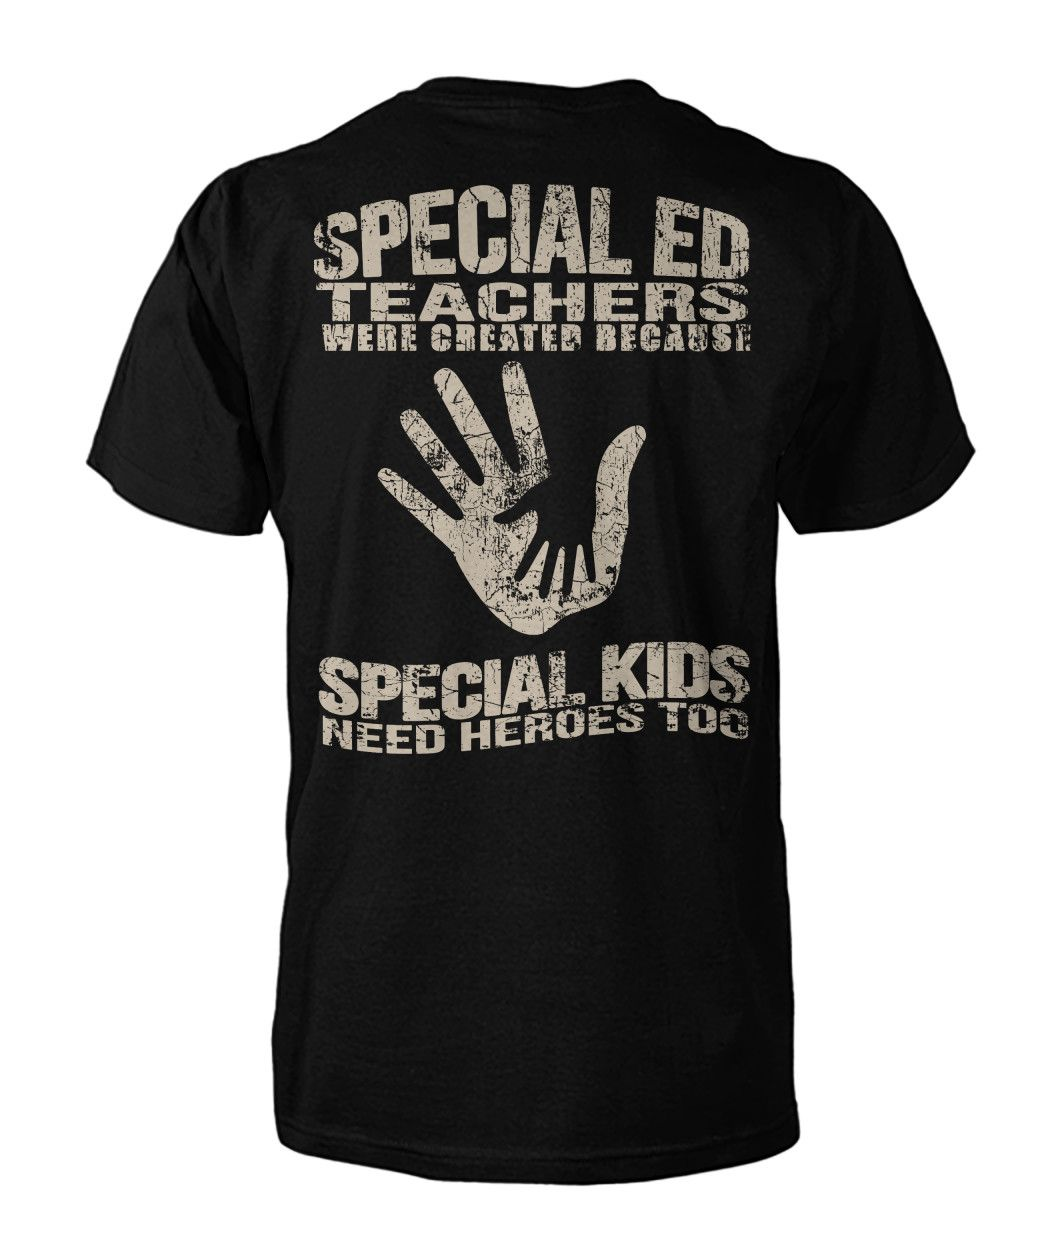 Special Education Teacher Heroes